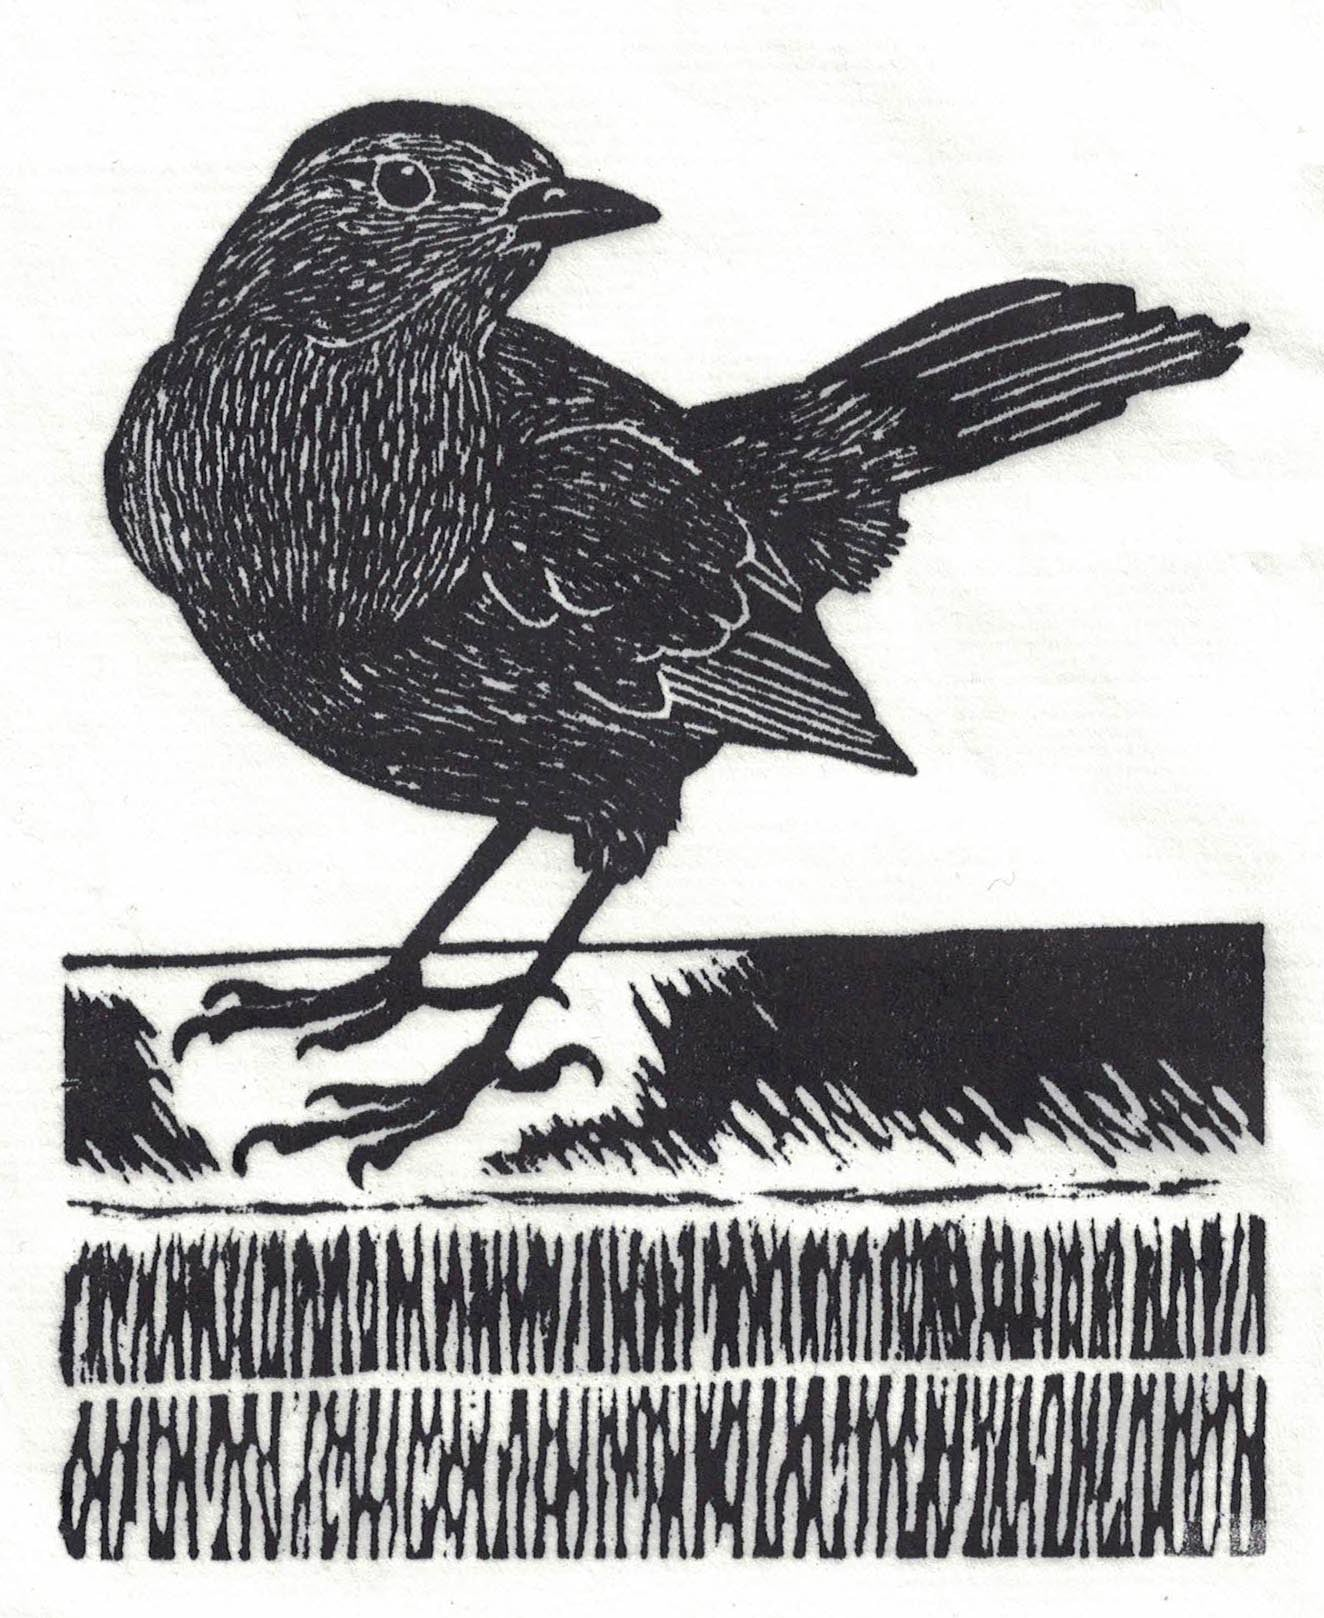 """May 19"" linocut; 4 x 5"" image size, 8 x 9"" paper size; printed on HP55 handmade laid rice paper; edition of 8; 2012; unframed"